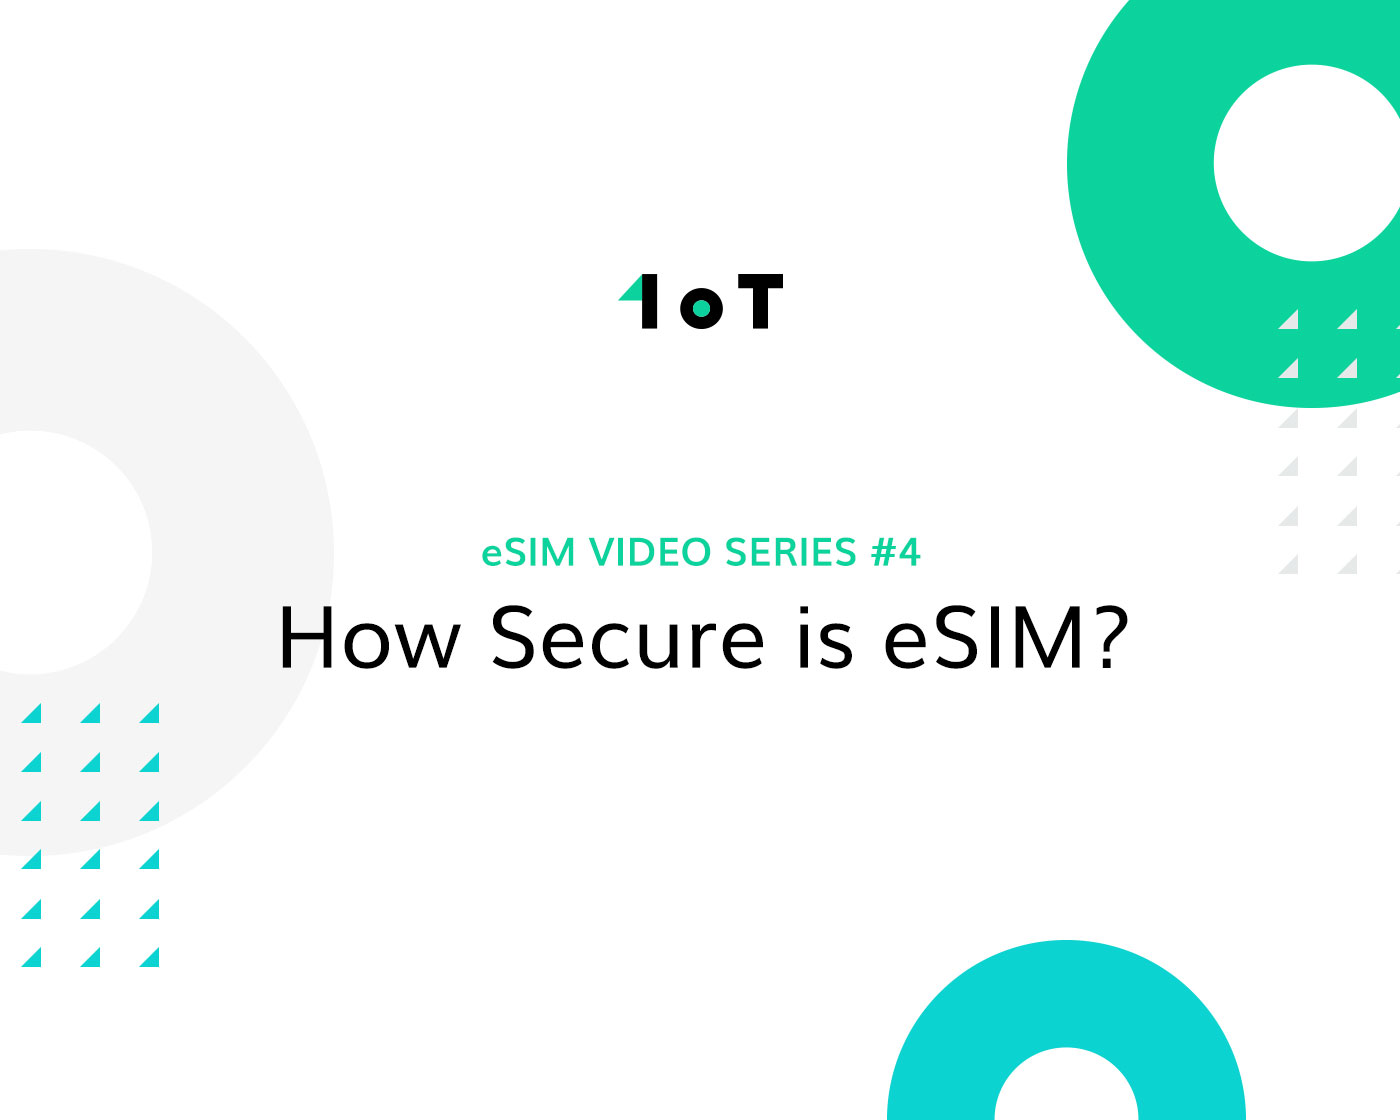 Article cover image for 1oT eSIM Video Series #4: How Secure is eSIM?